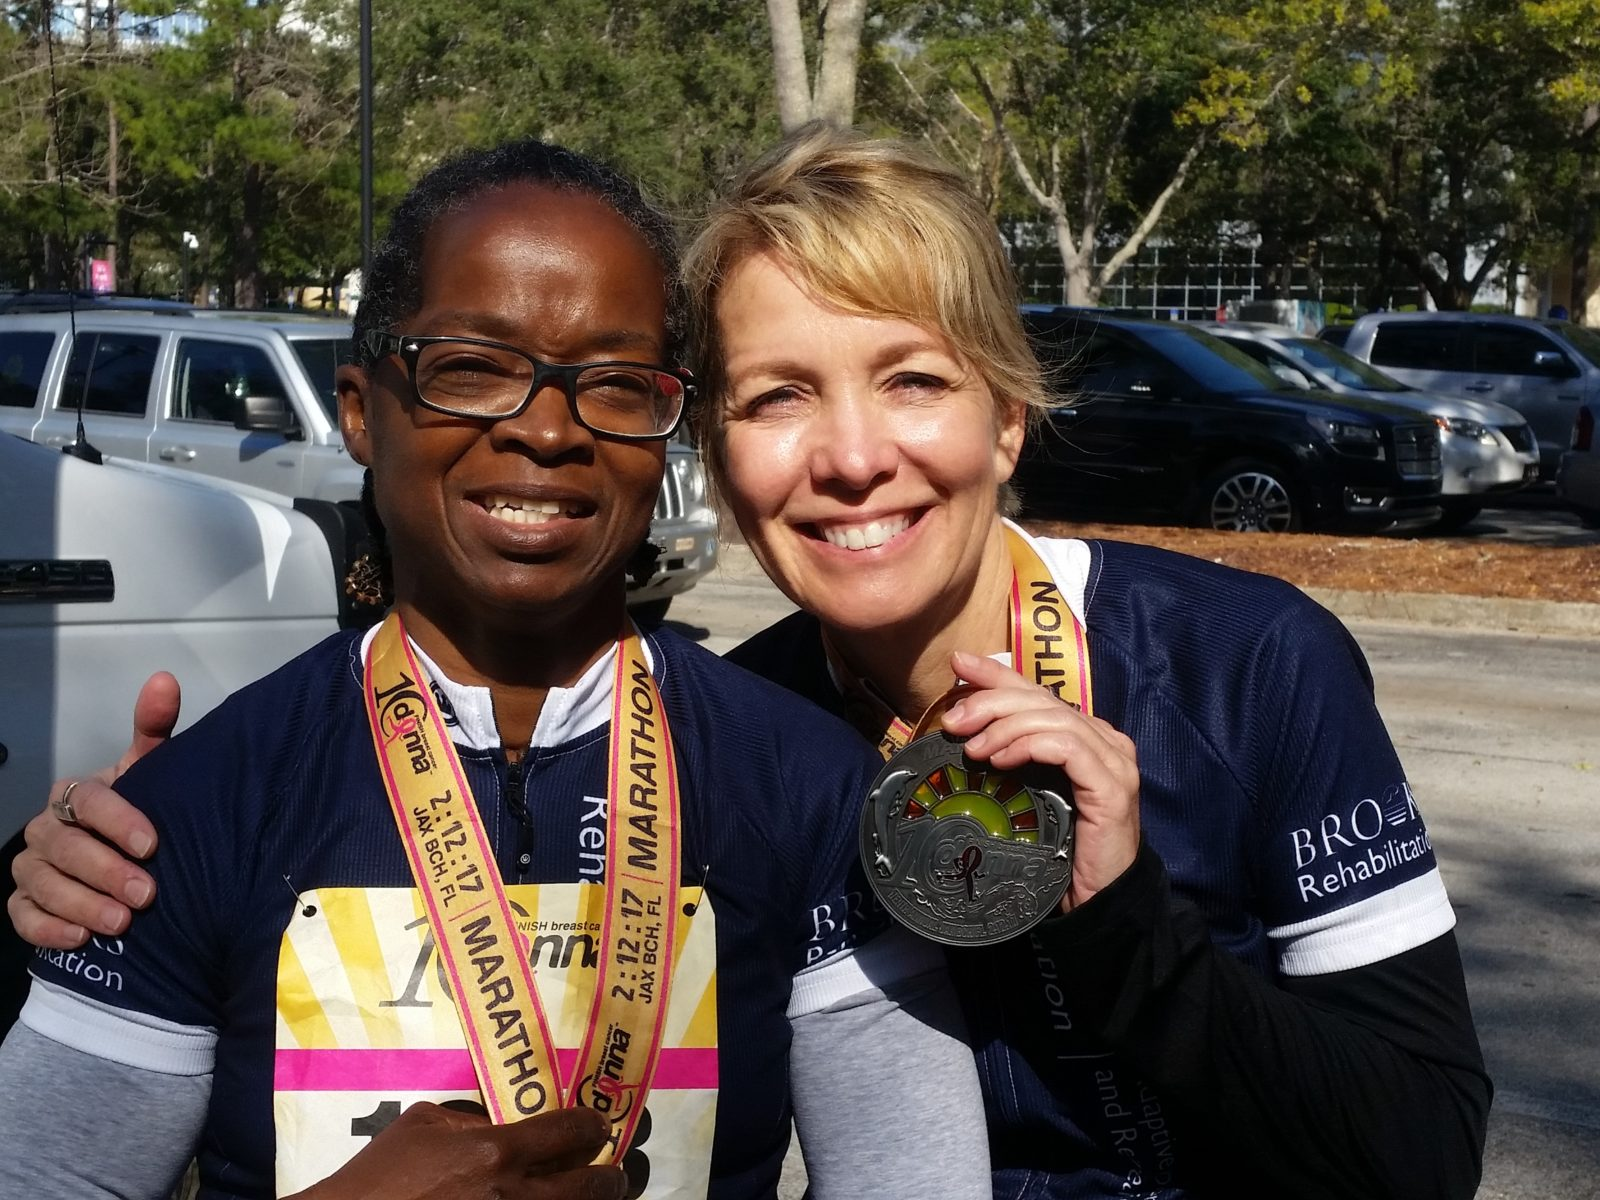 Two girls hug after biking 26.2 miles while holding their medals